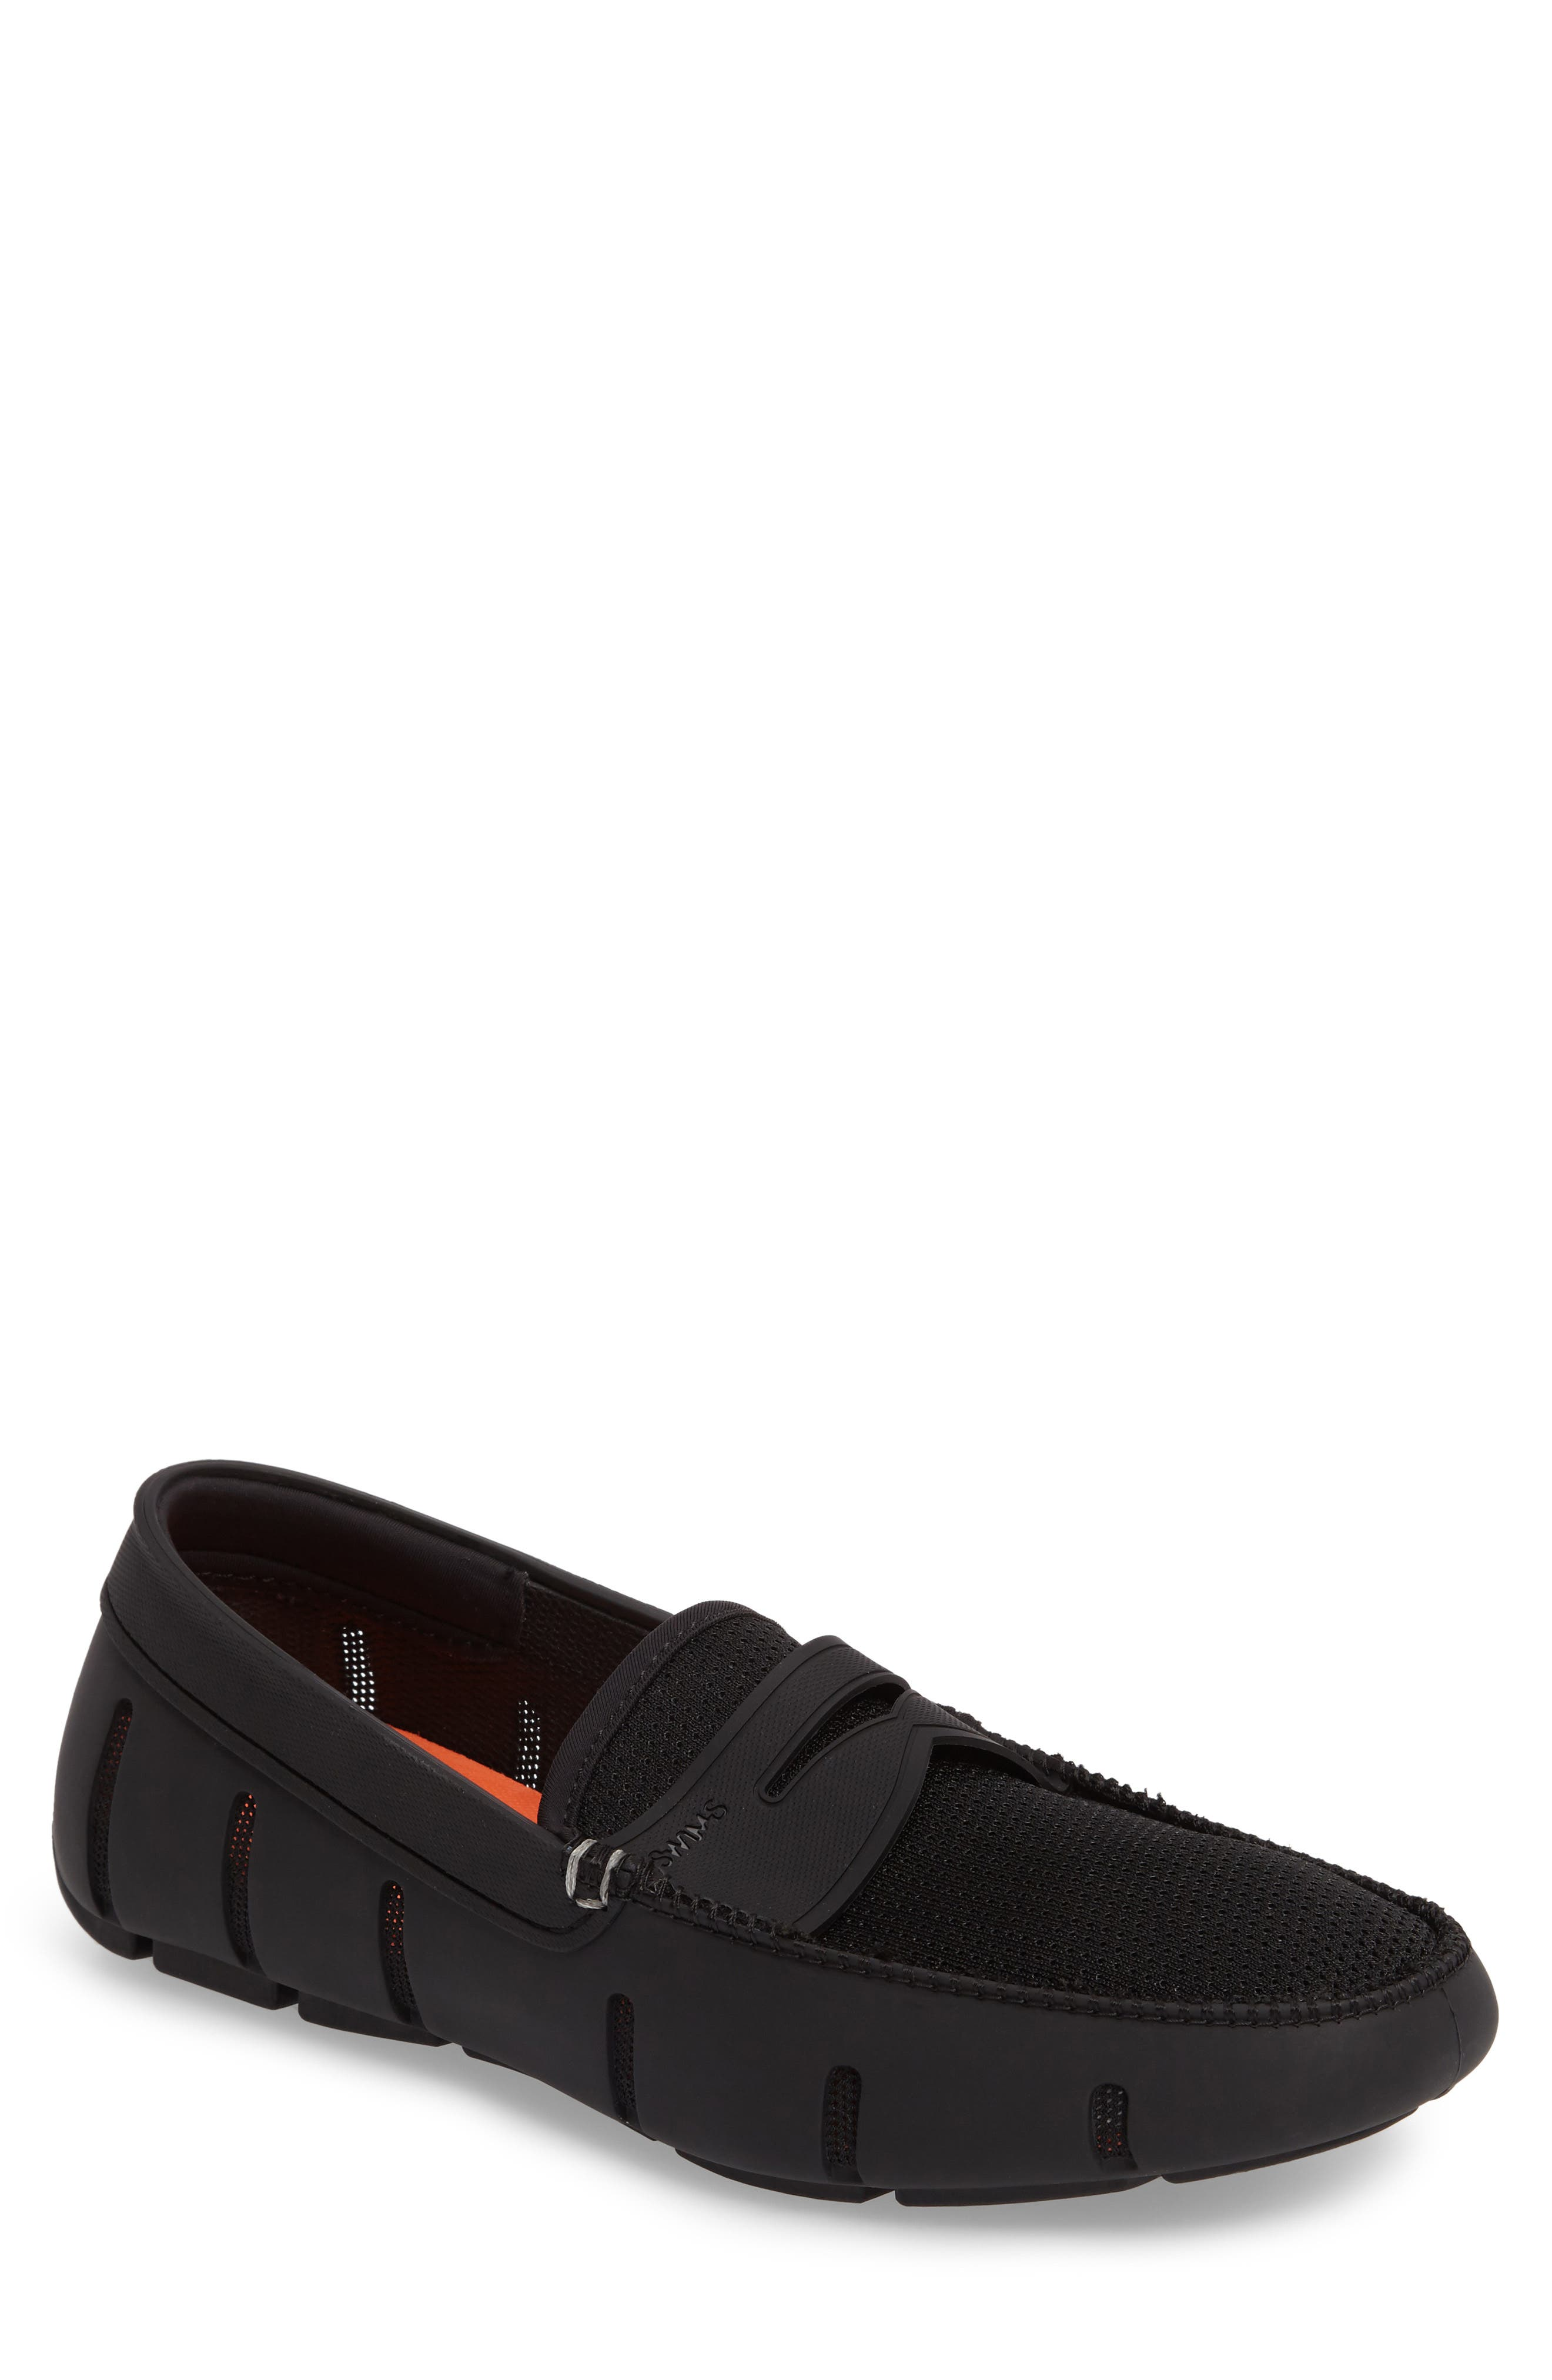 SWIMS Penny Loafer, Main, color, BLACK/BLACK